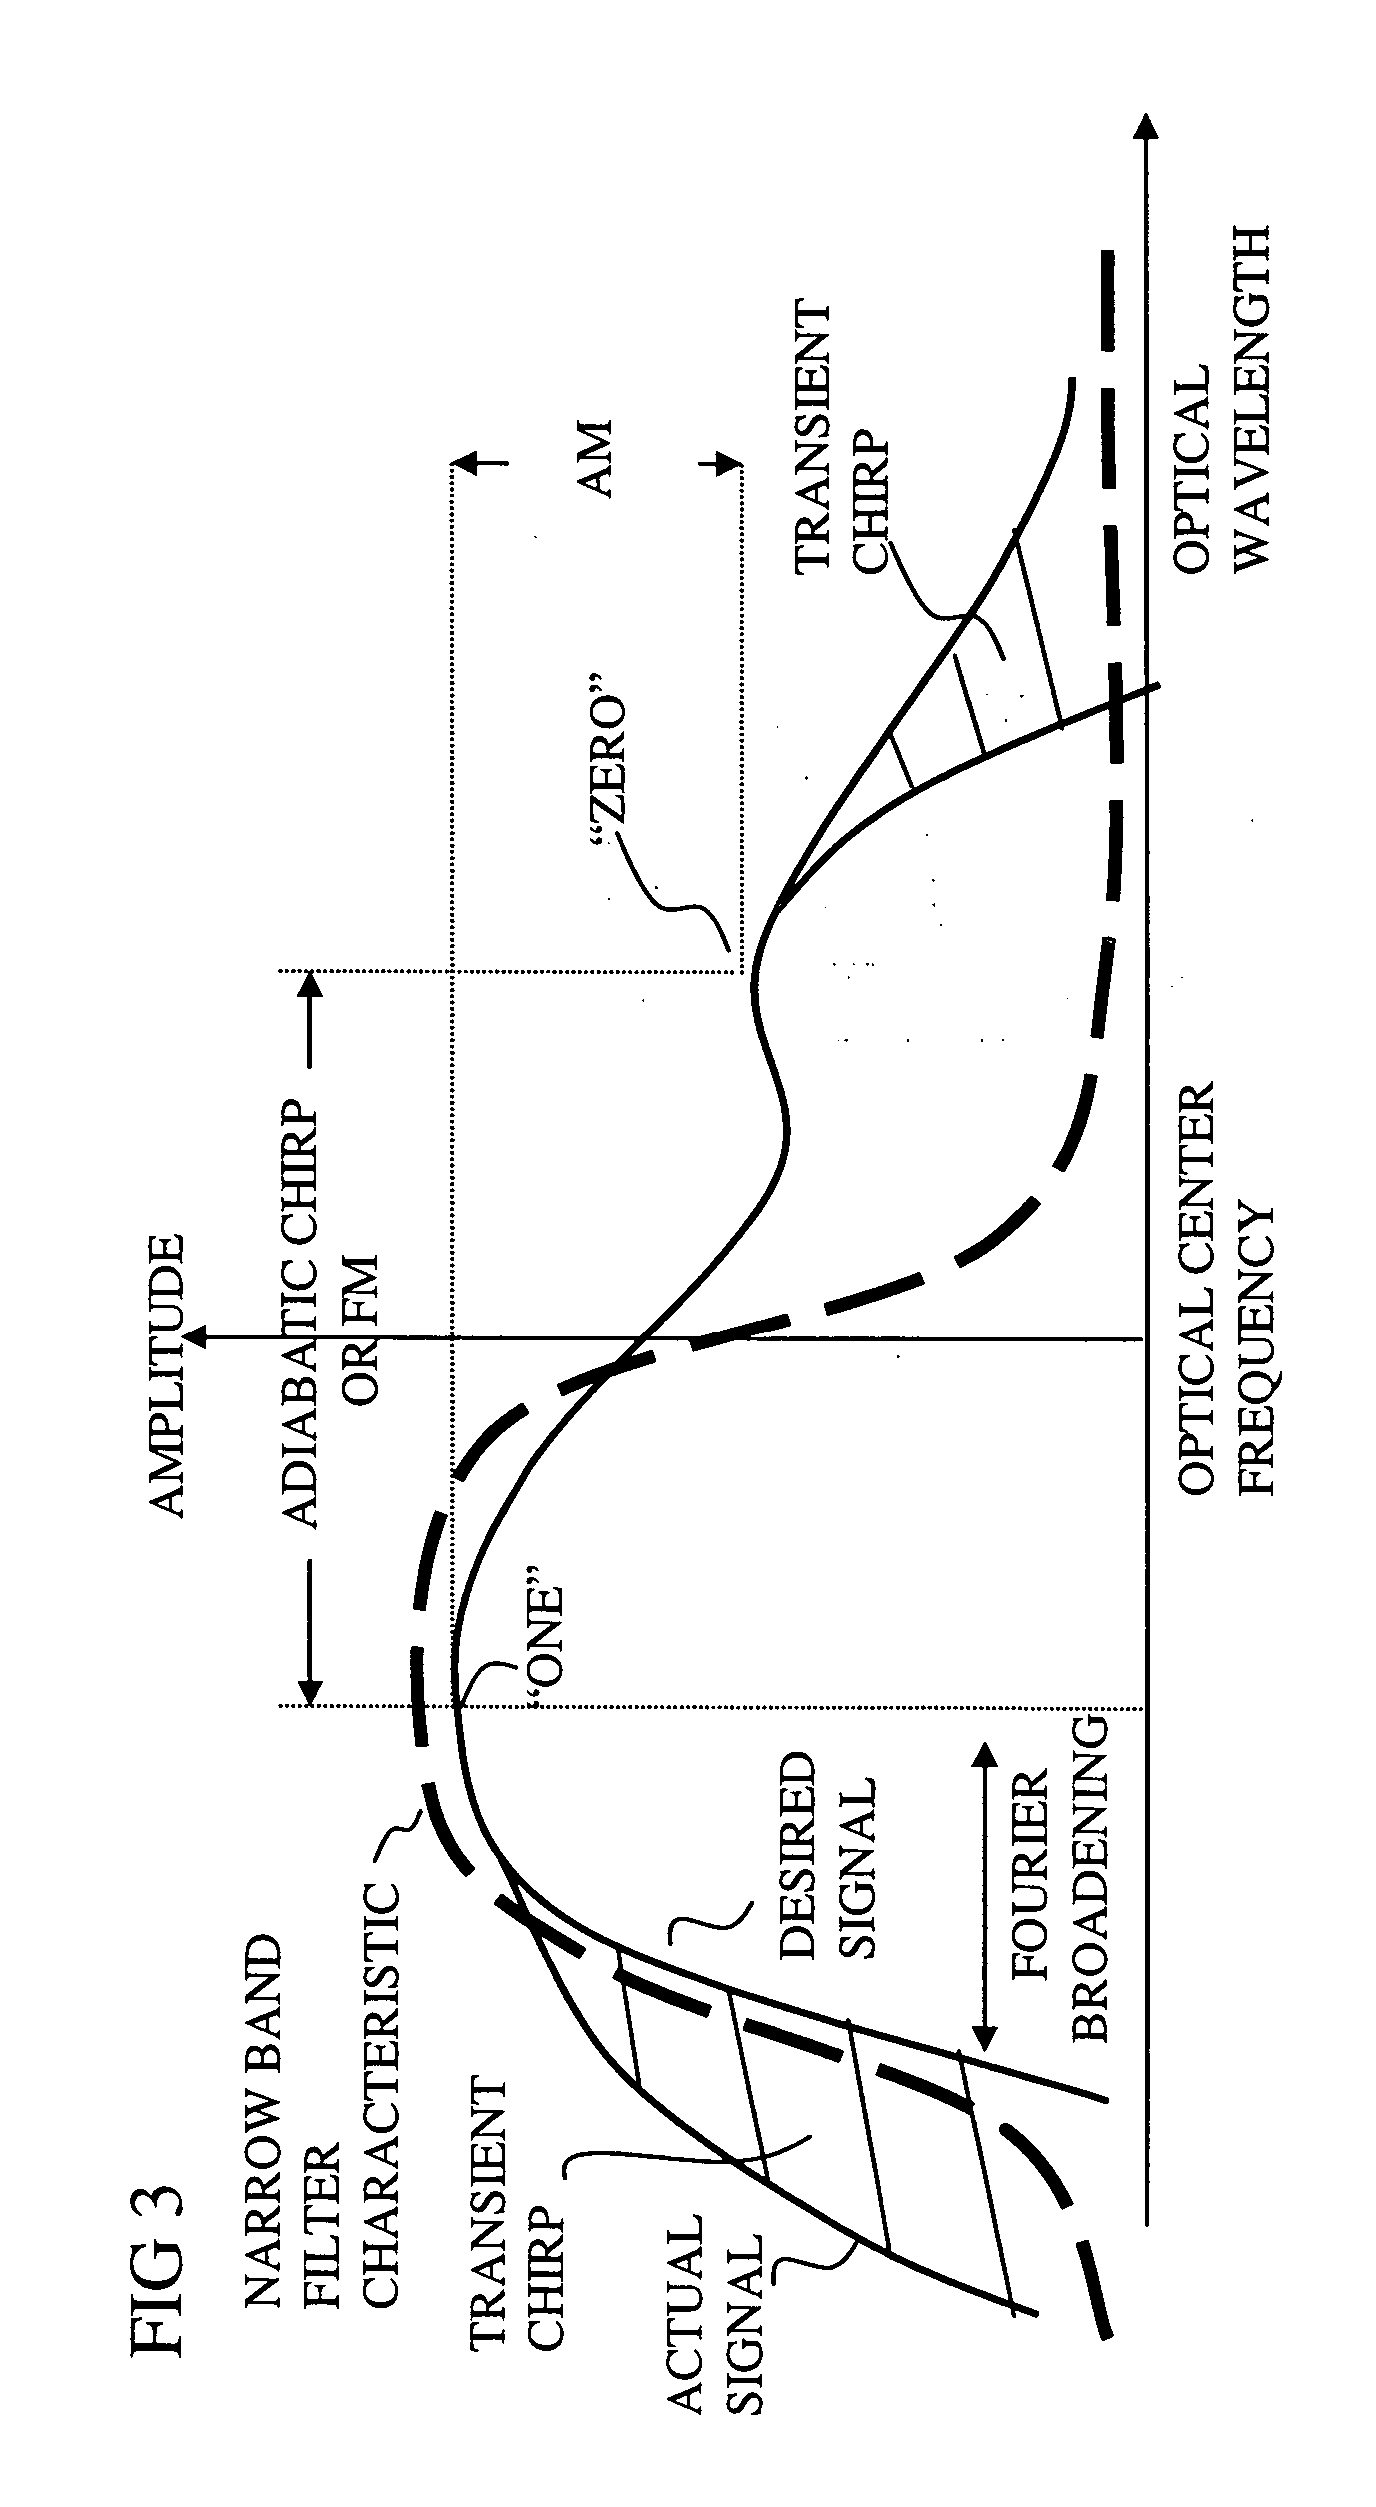 patent us20050271394 - filter to improve dispersion tolerance for optical transmission